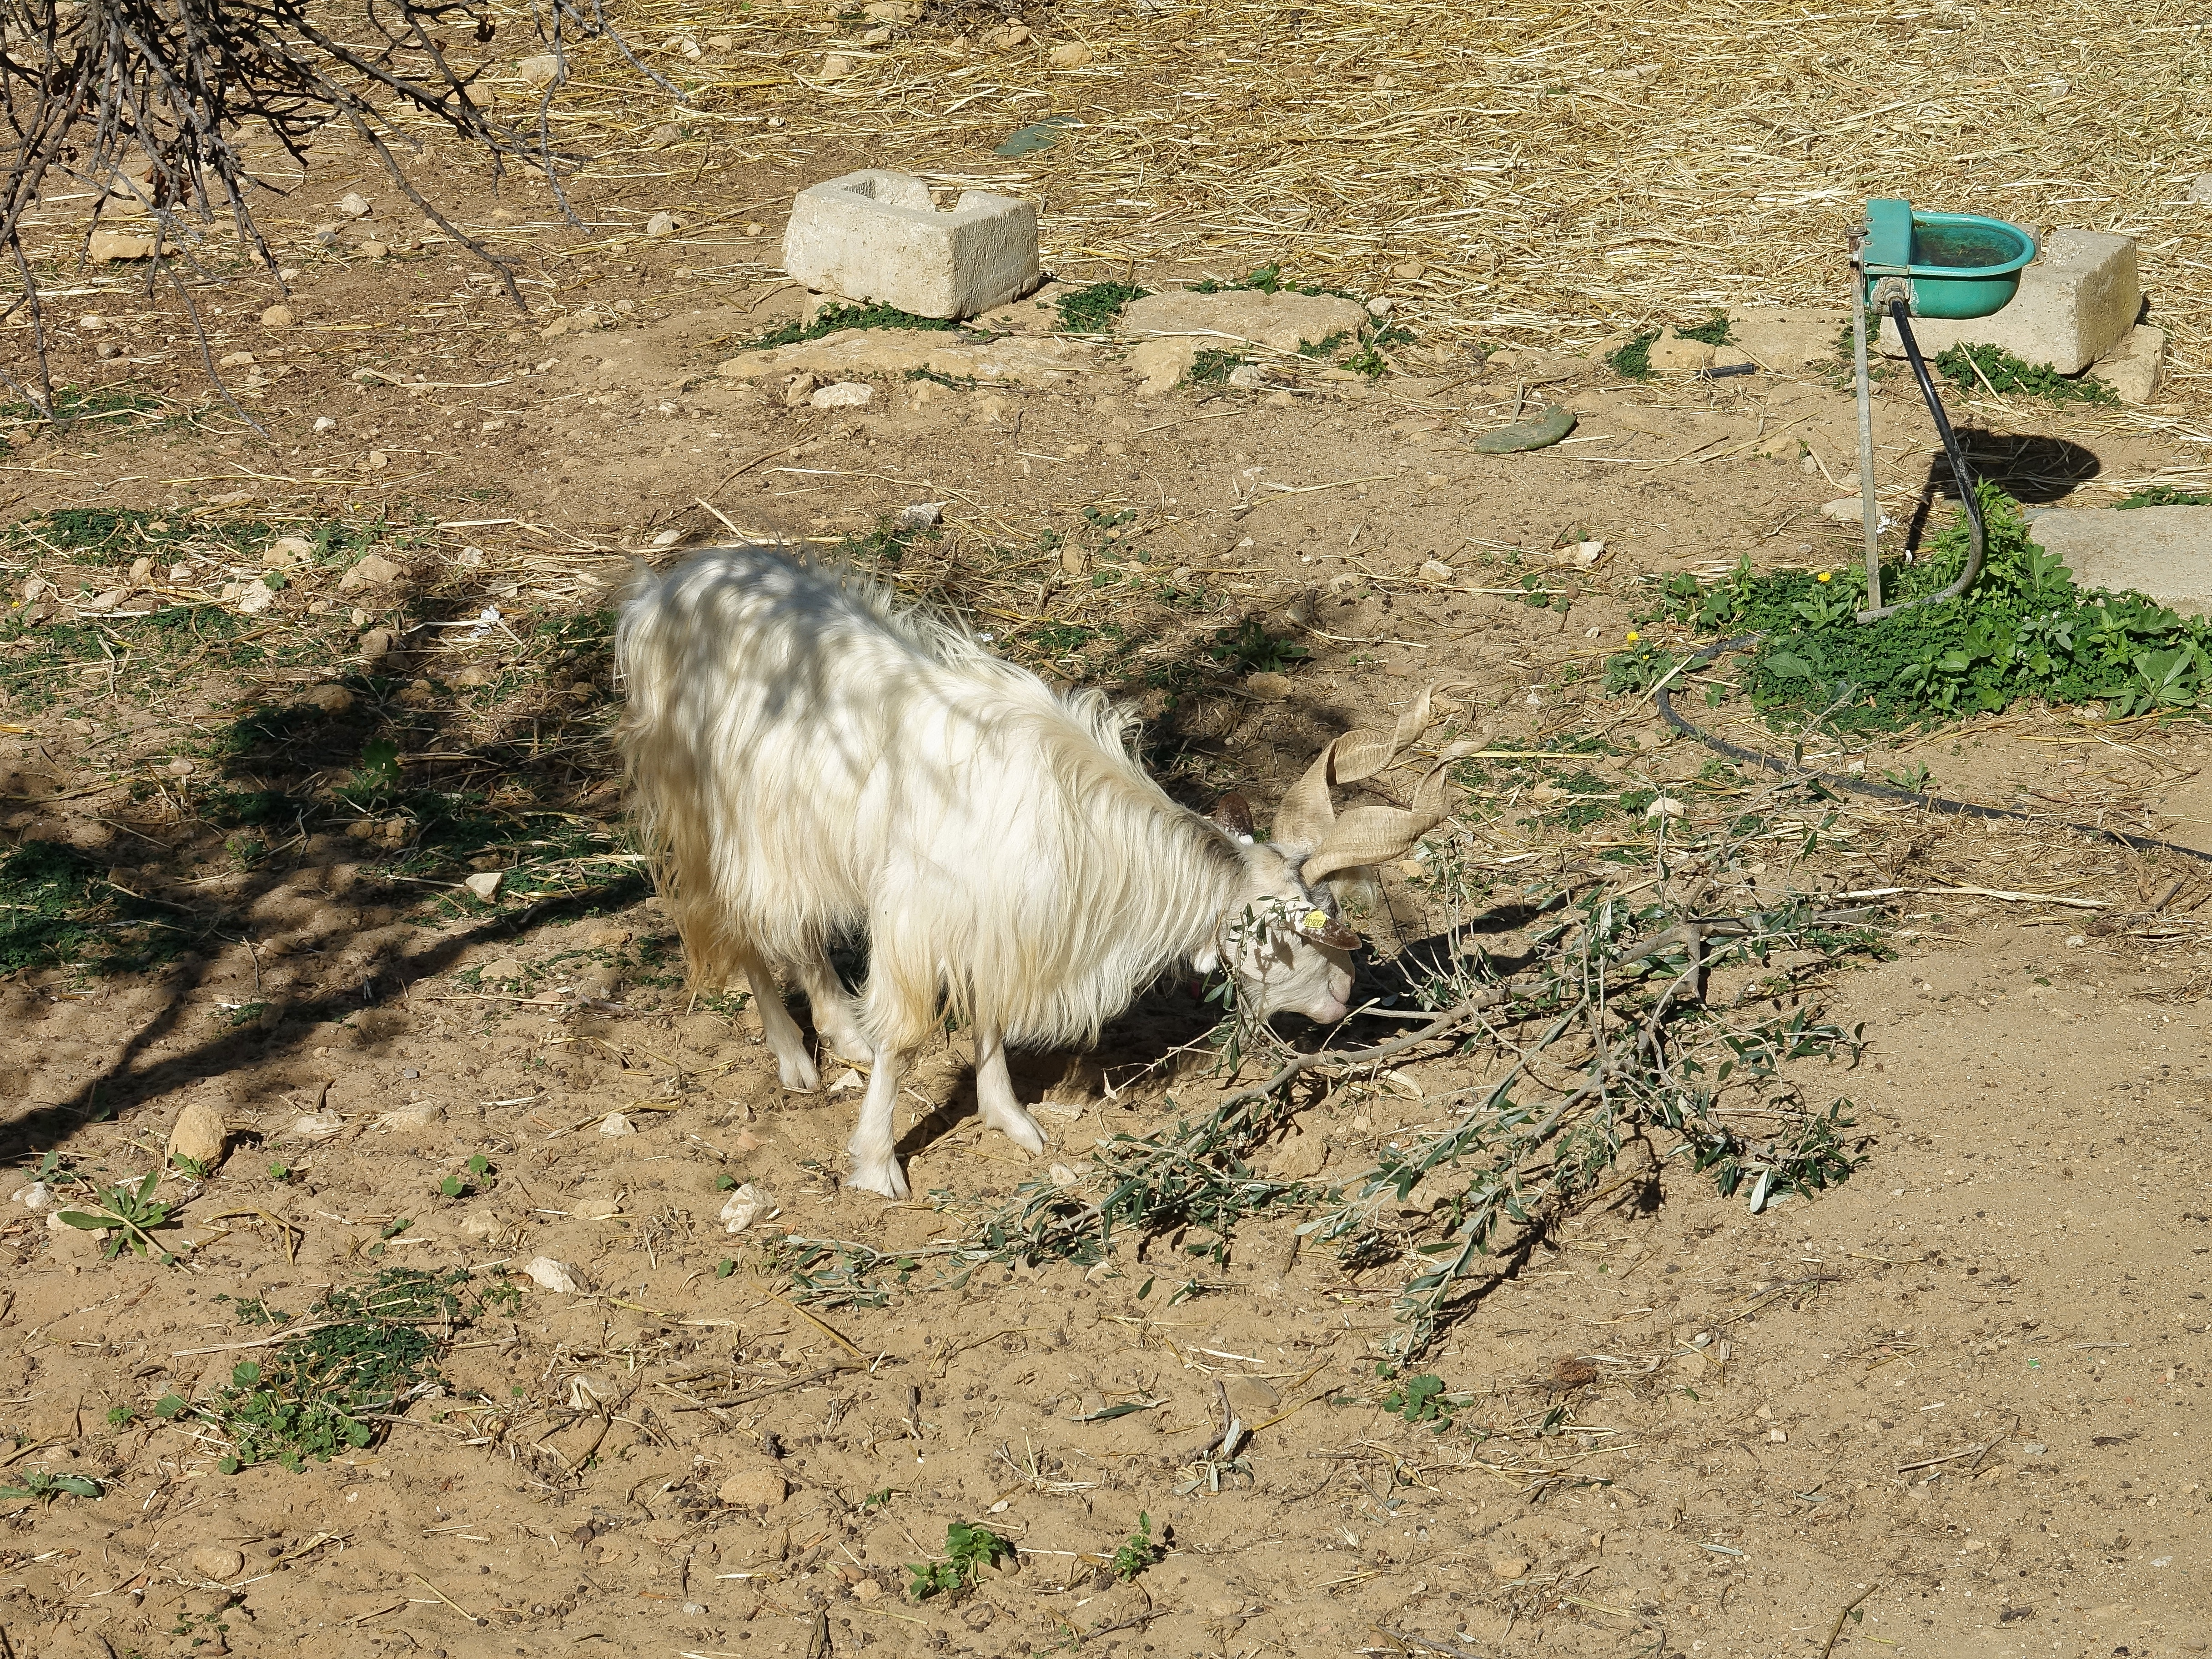 The local goats here are unique for the twisted/curved horns